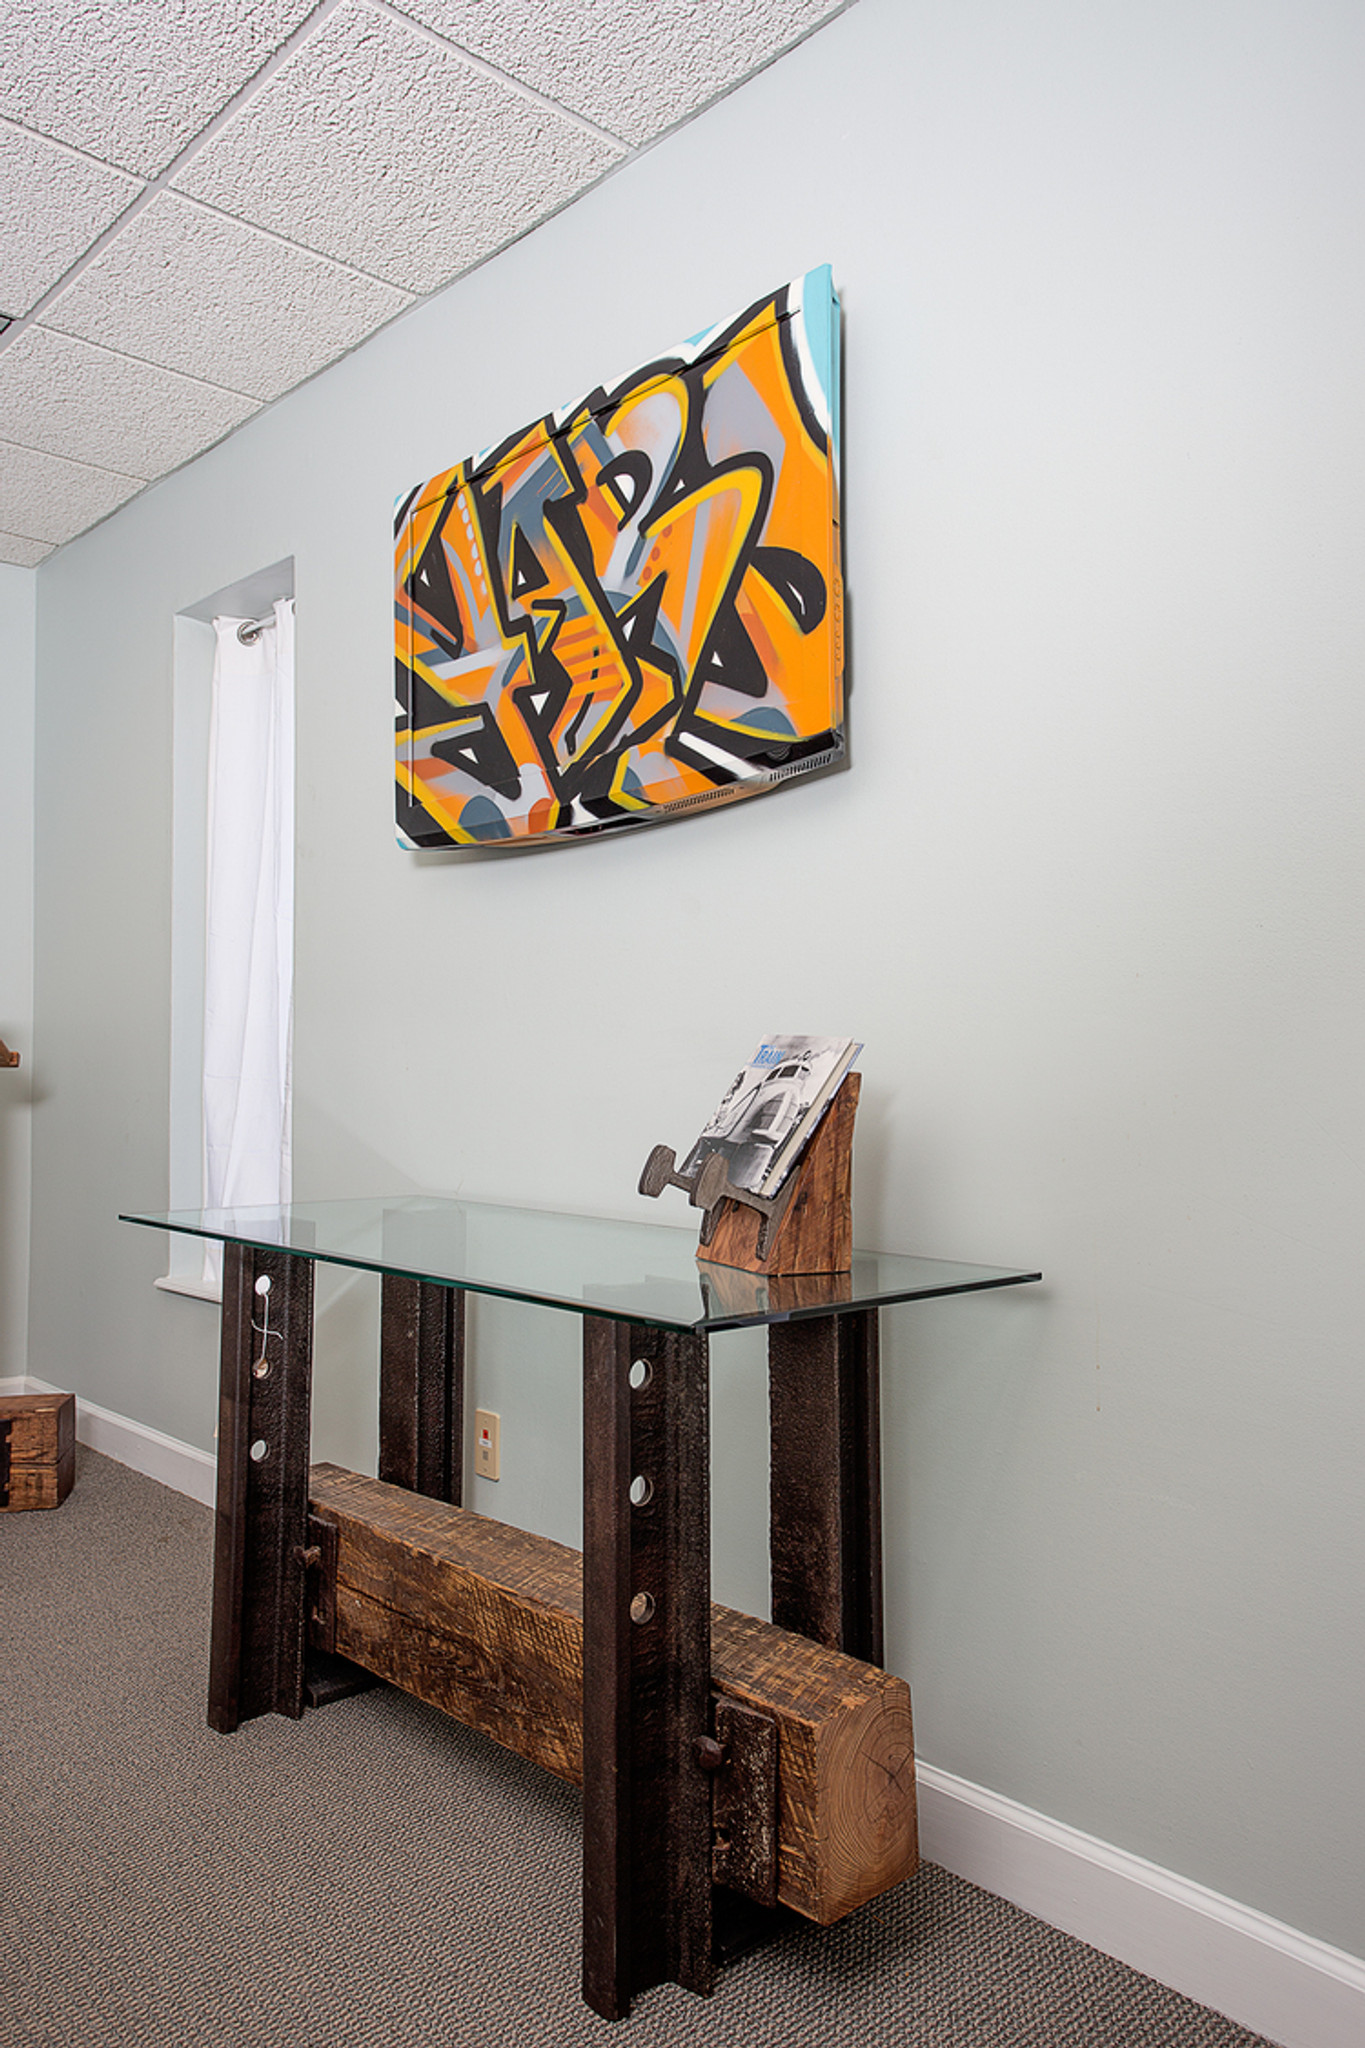 graffiti wall hanging from reclaimed materials in modern interior with salvaged material artisan table